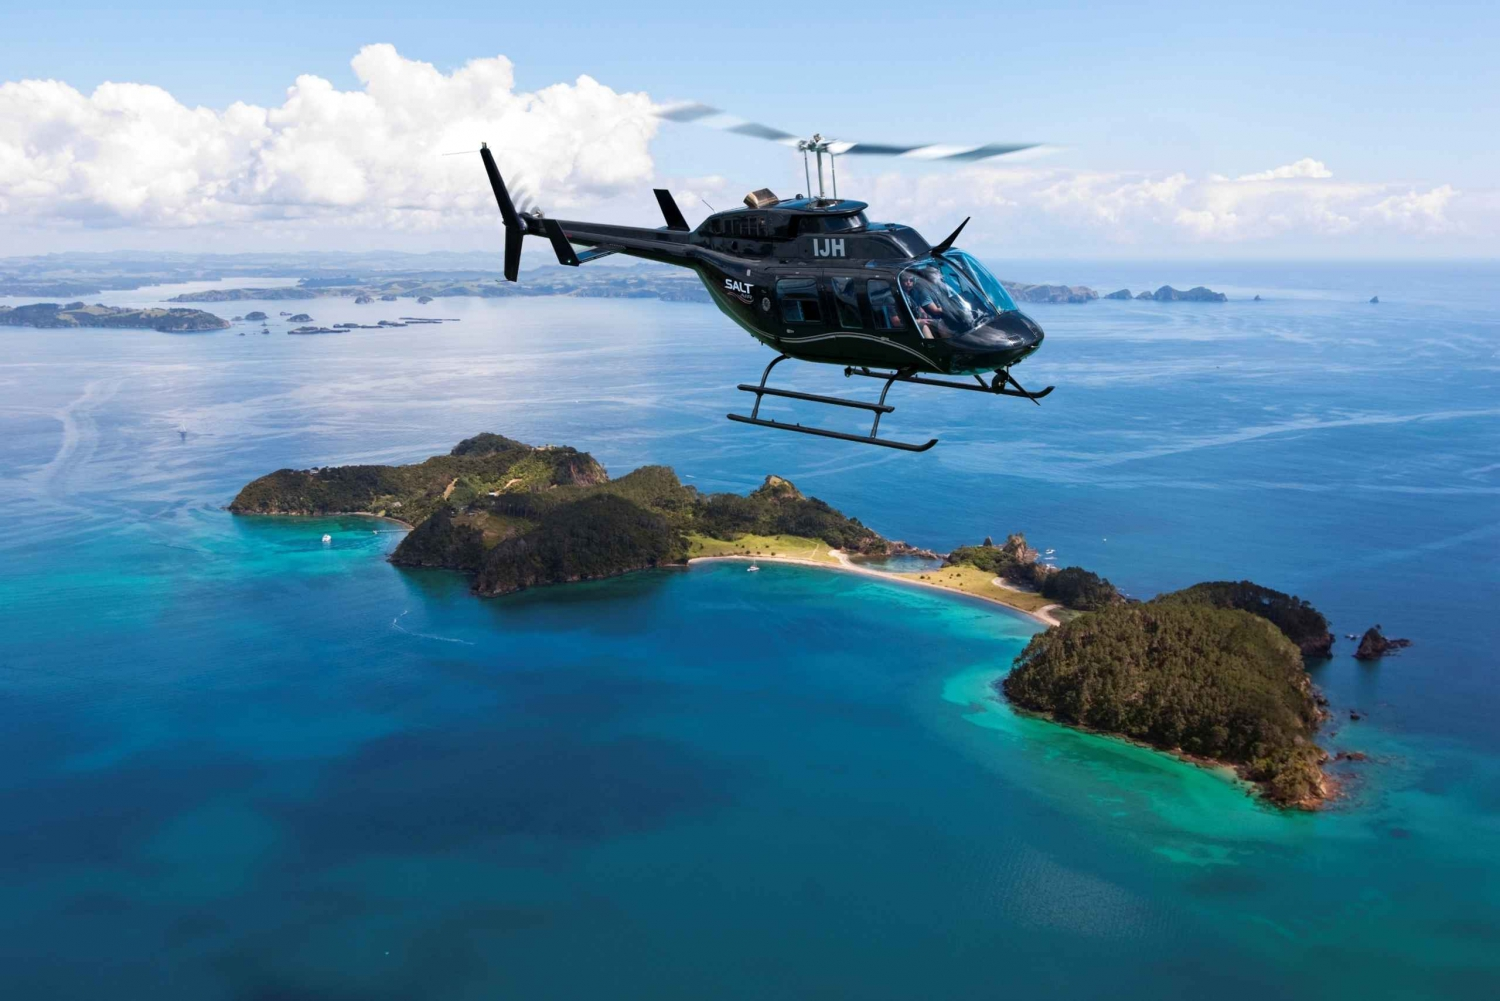 Bay of Islands: Scenic 30-Minute Coastal Discovery Heli Tour